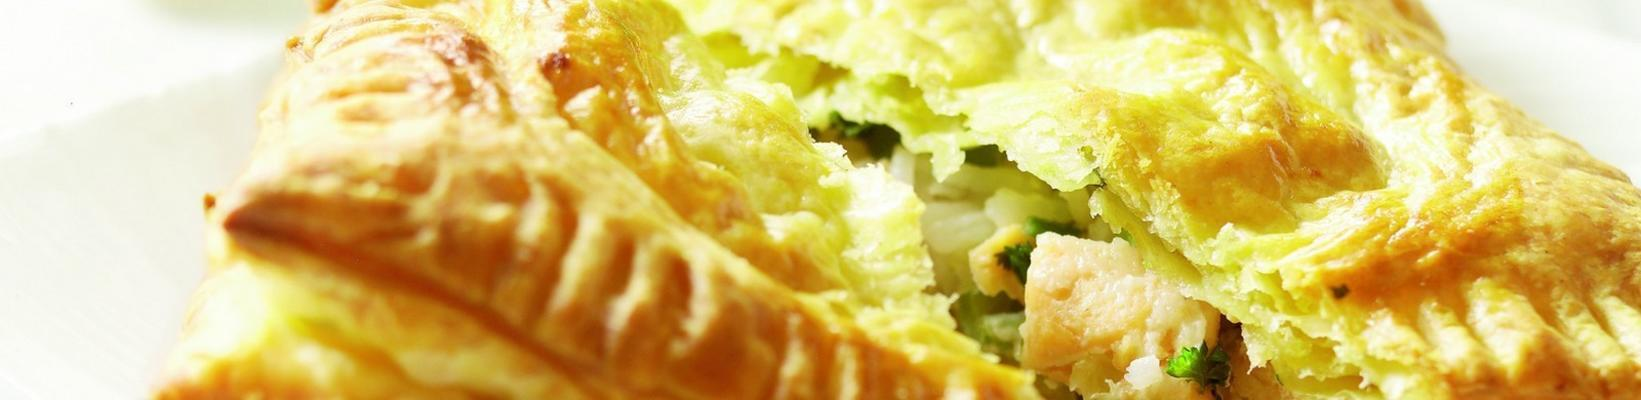 puff pastry packages with salmon